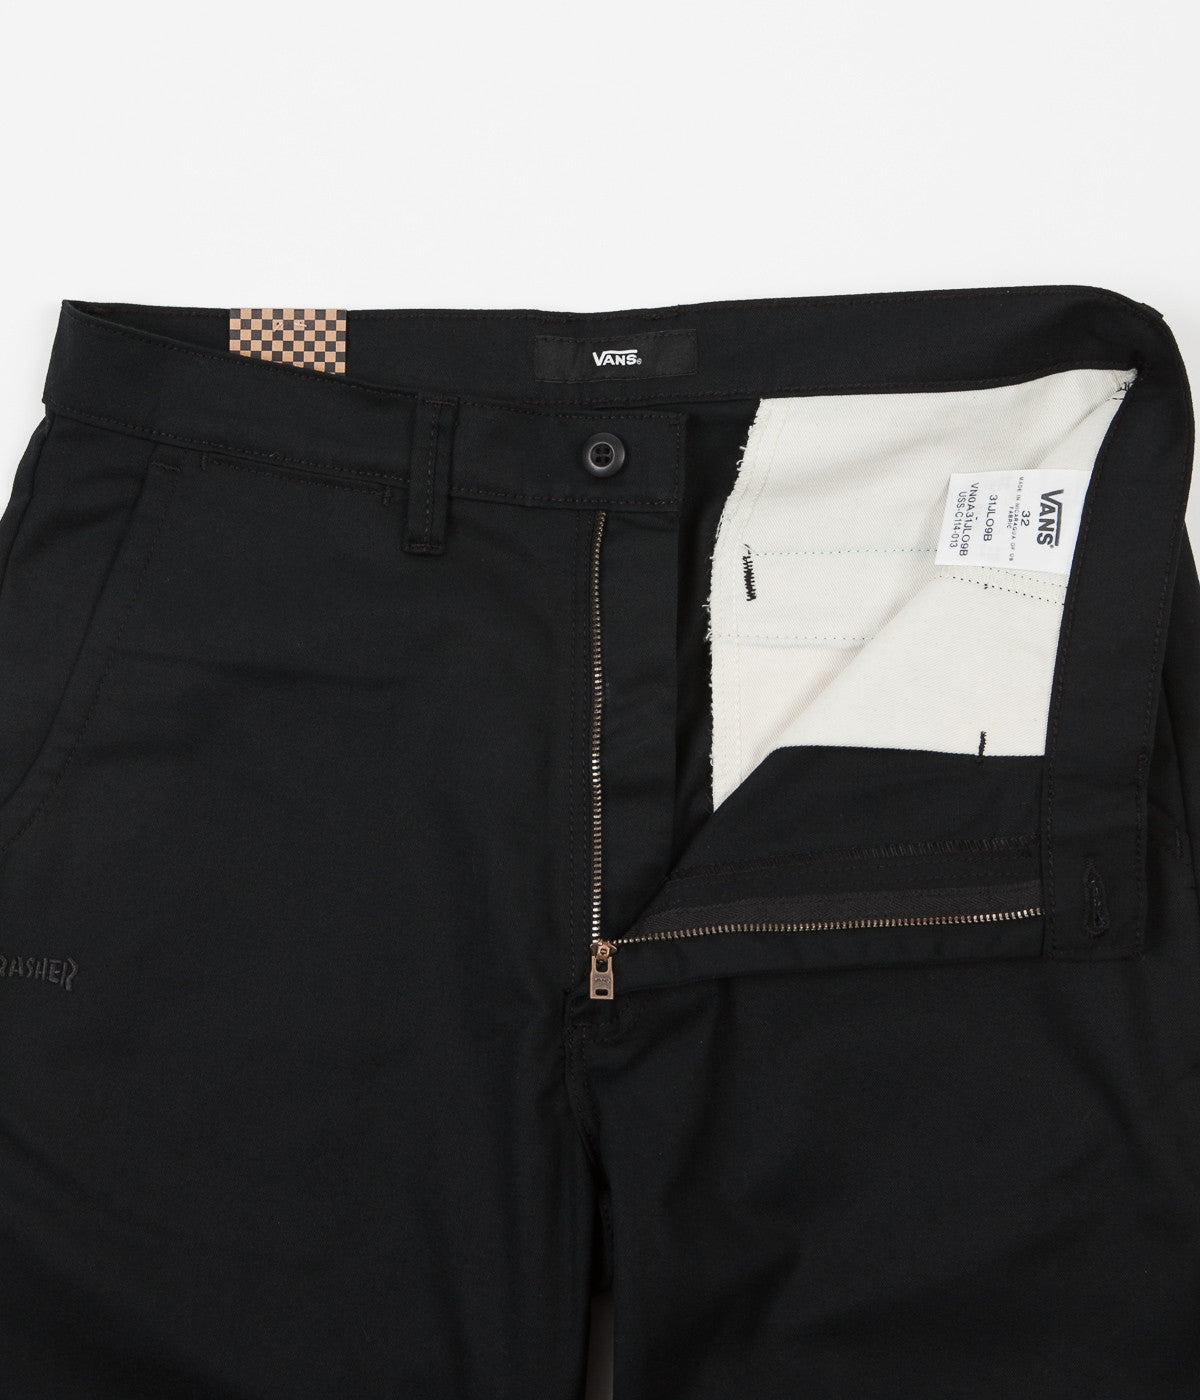 a8b8054c414ce0 ... Vans x Thrasher Authentic Chino Pro Trousers - Black ...